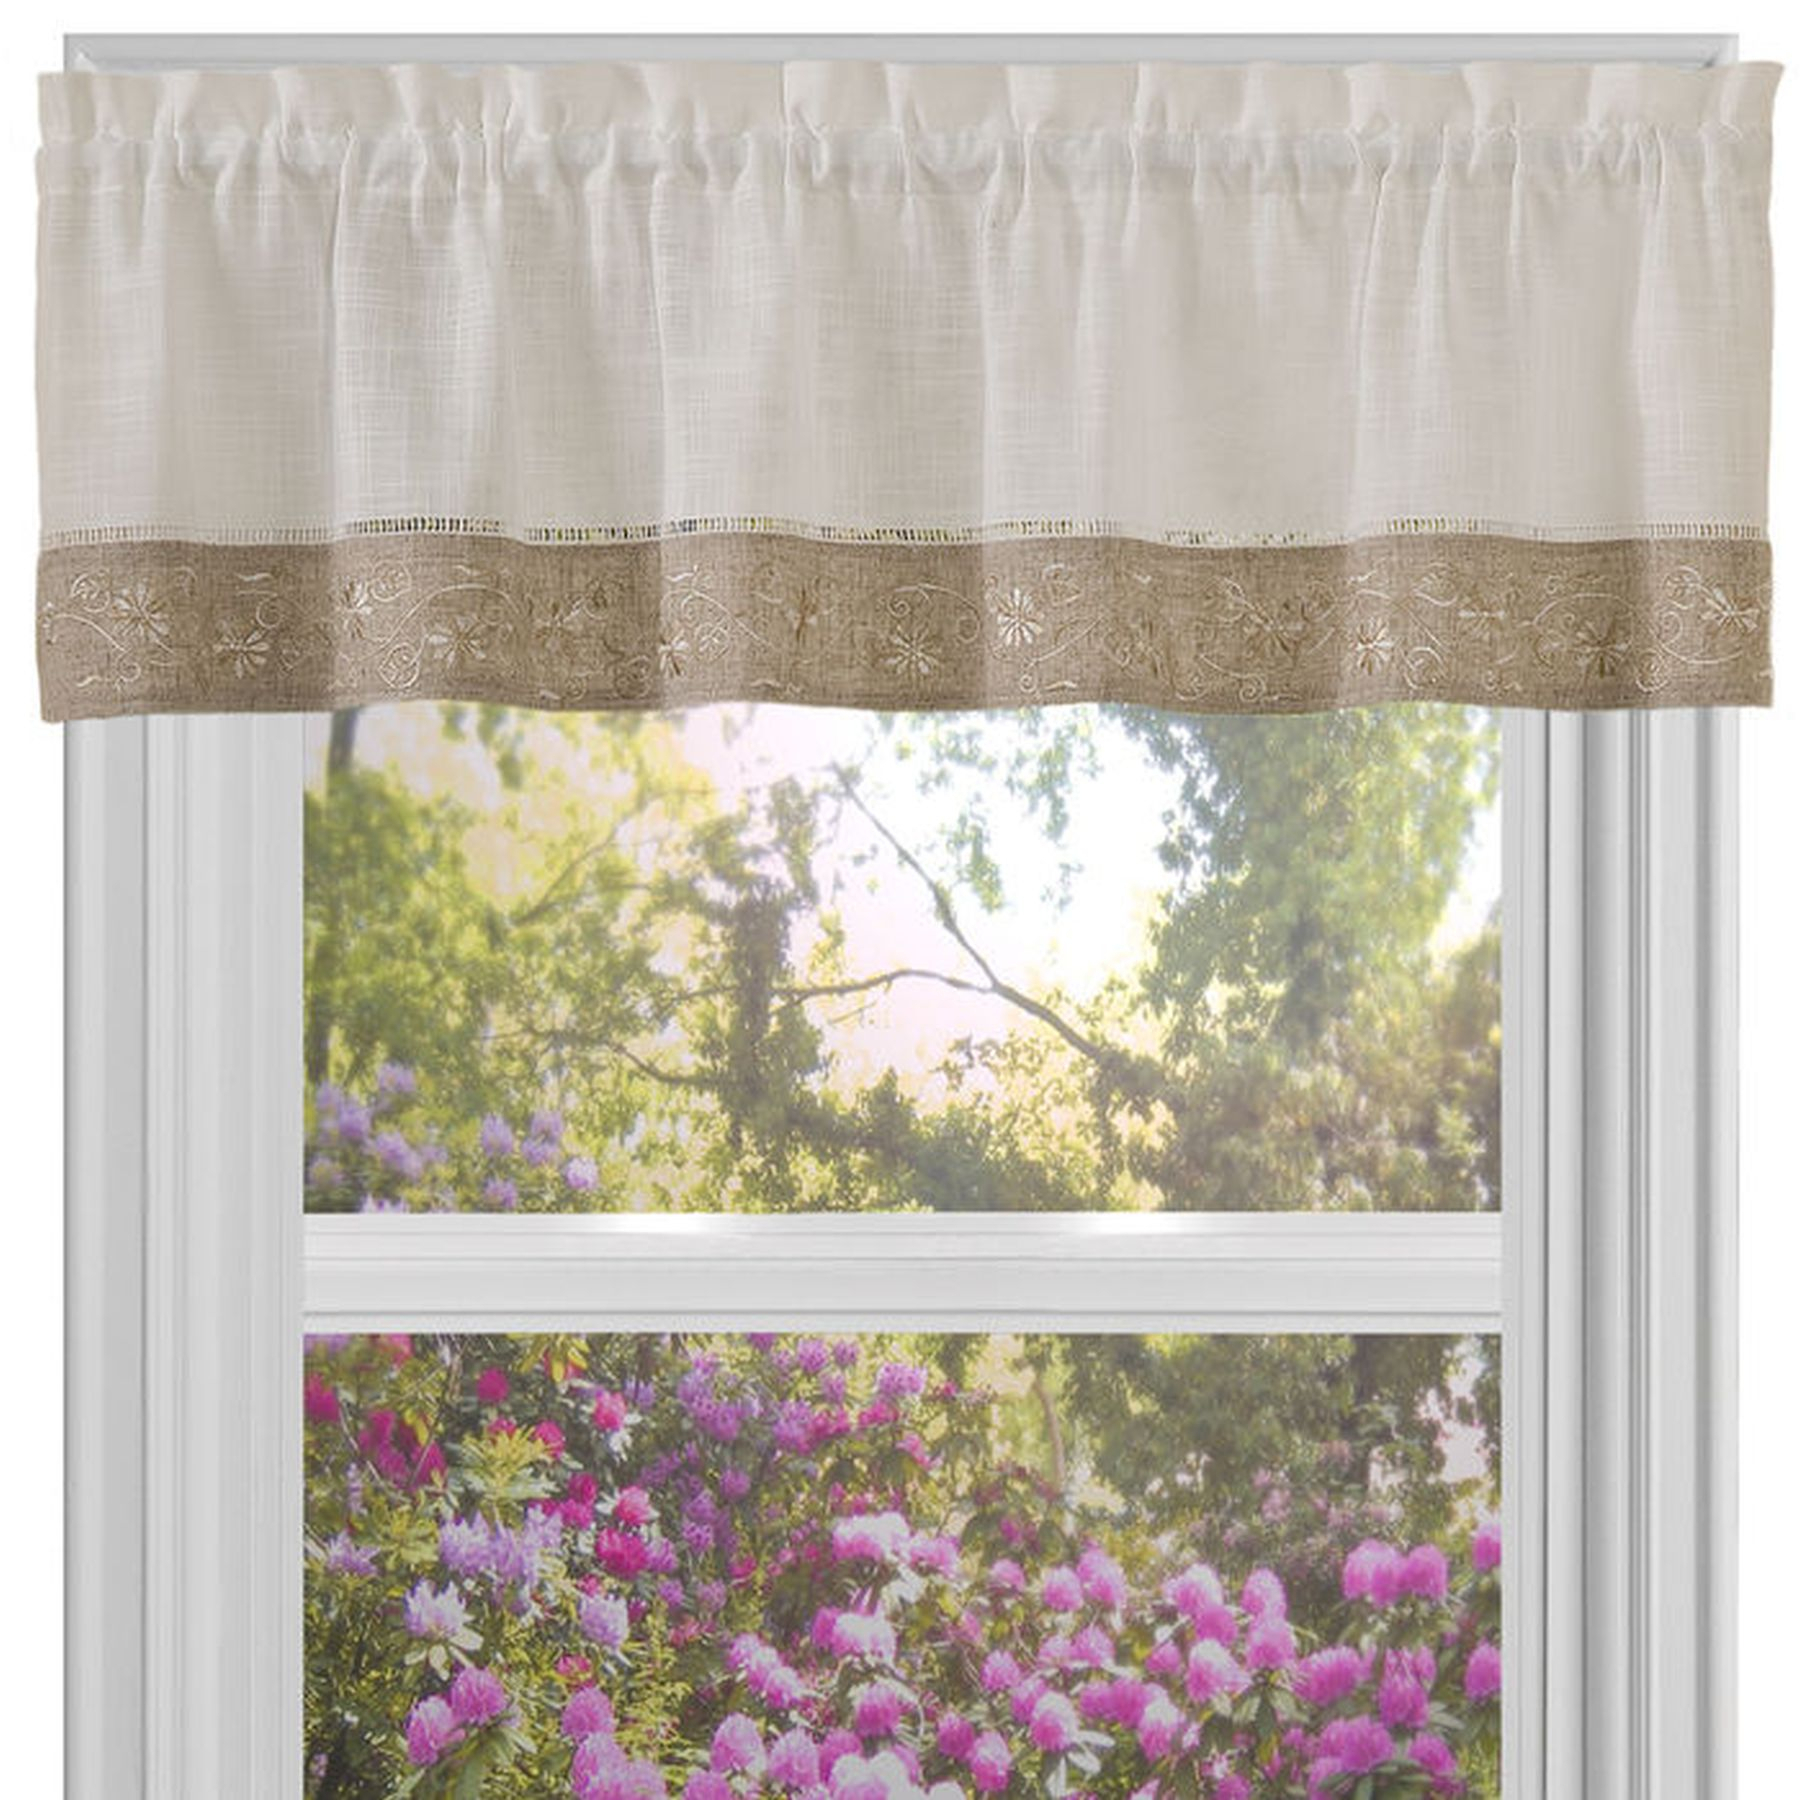 Traditional Elegance Oakwood 58x14 Window Curtain Valance – Natural Intended For Oakwood Linen Style Decorative Curtain Tier Sets (View 14 of 20)